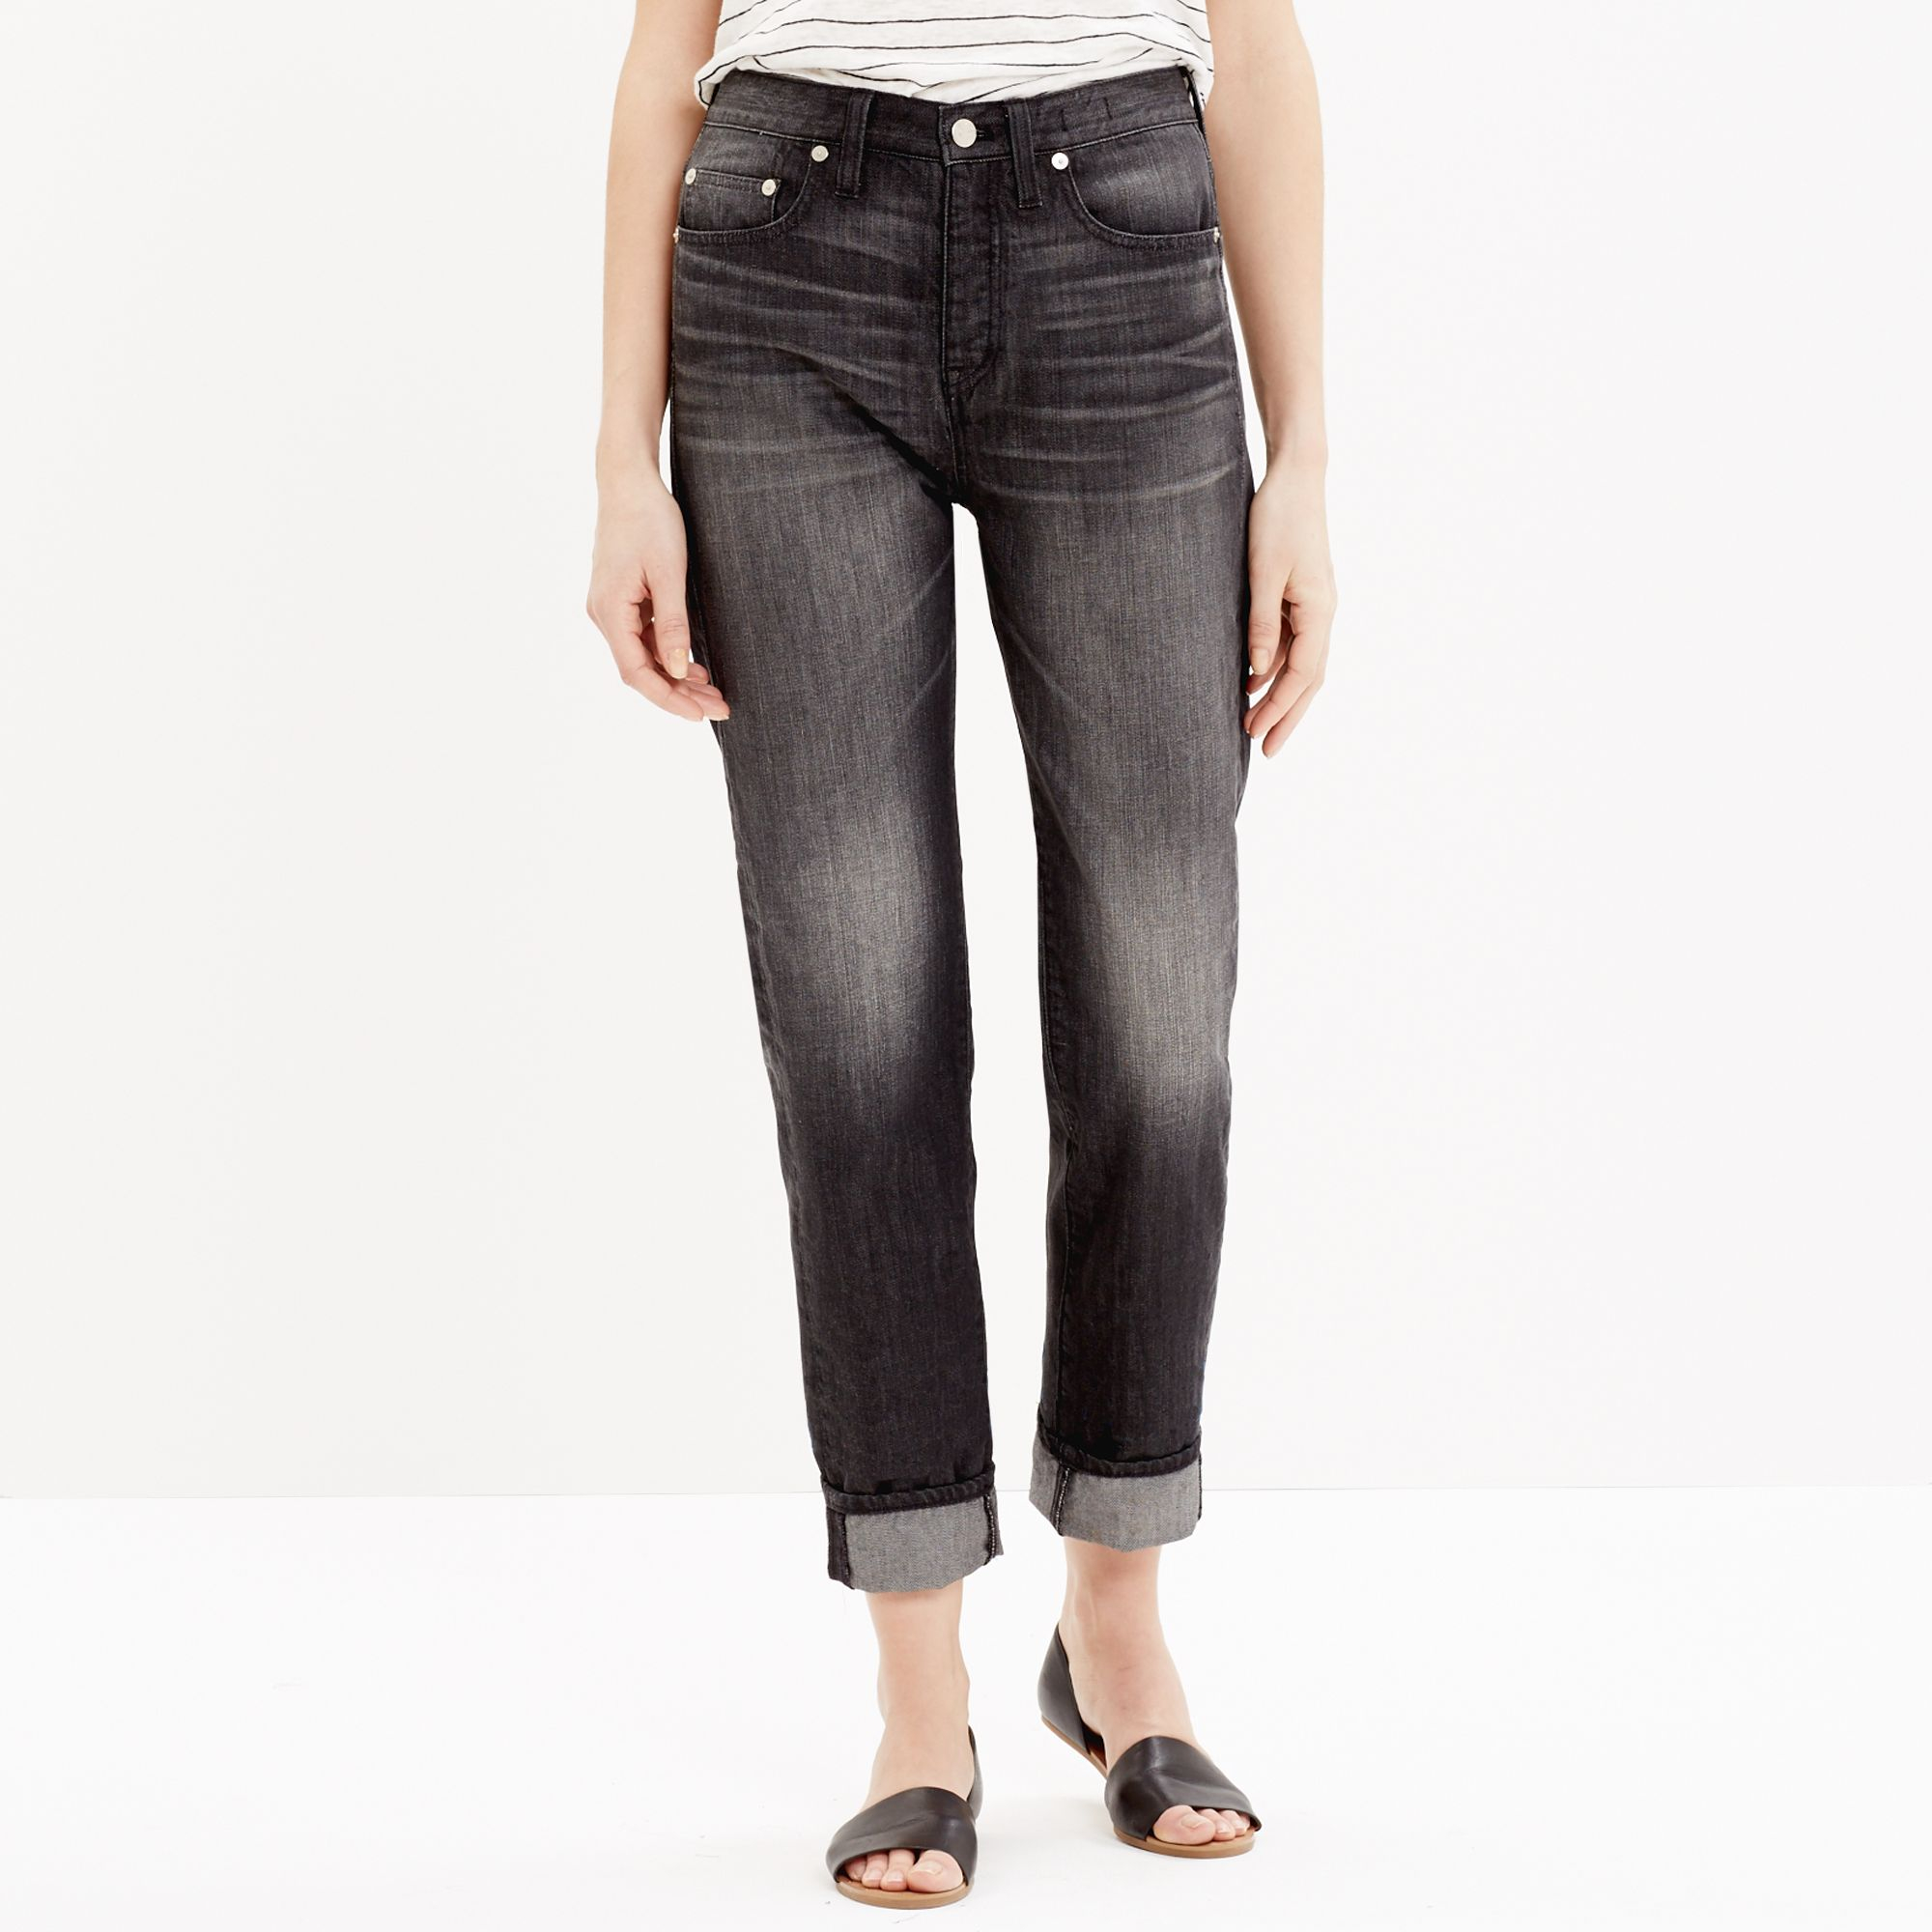 ccbec3277242 Lyst - Madewell The Perfect Summer Jean In Thornton Wash in Black